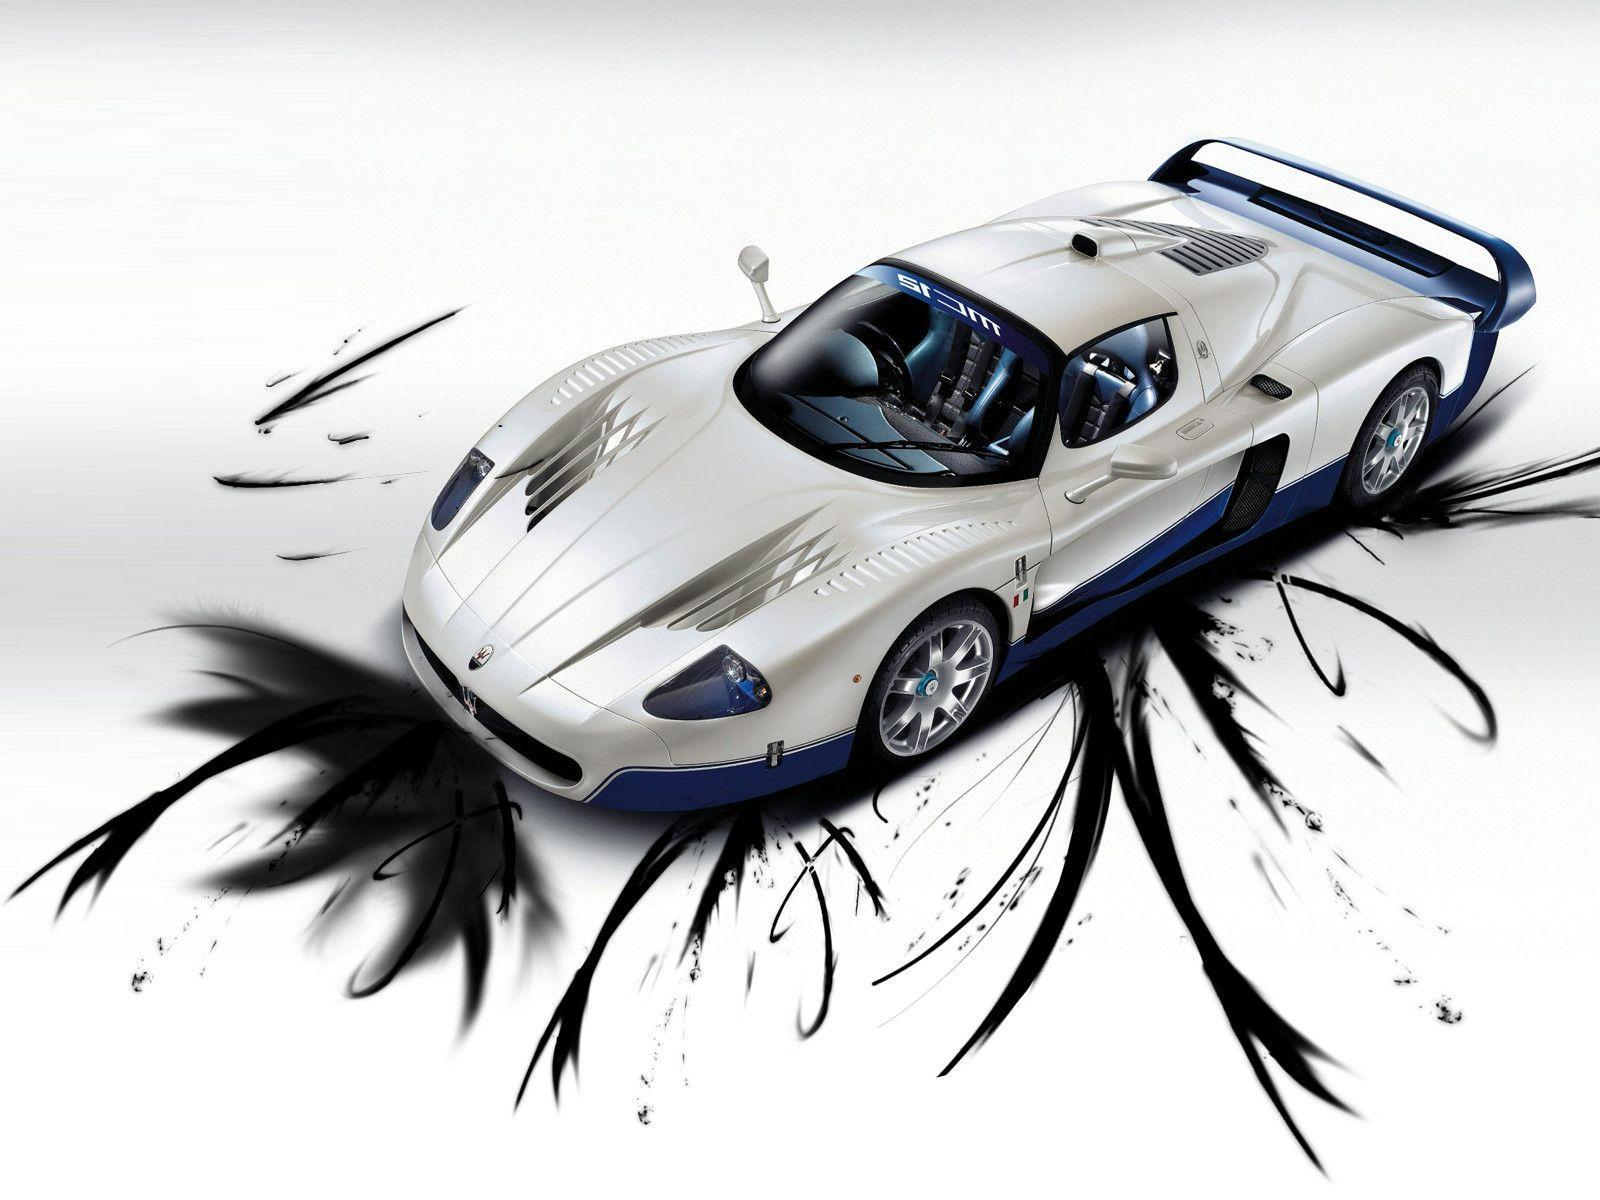 Sports Car Wallpapers For Desktop: Sports Cars Wallpapers For Desktop